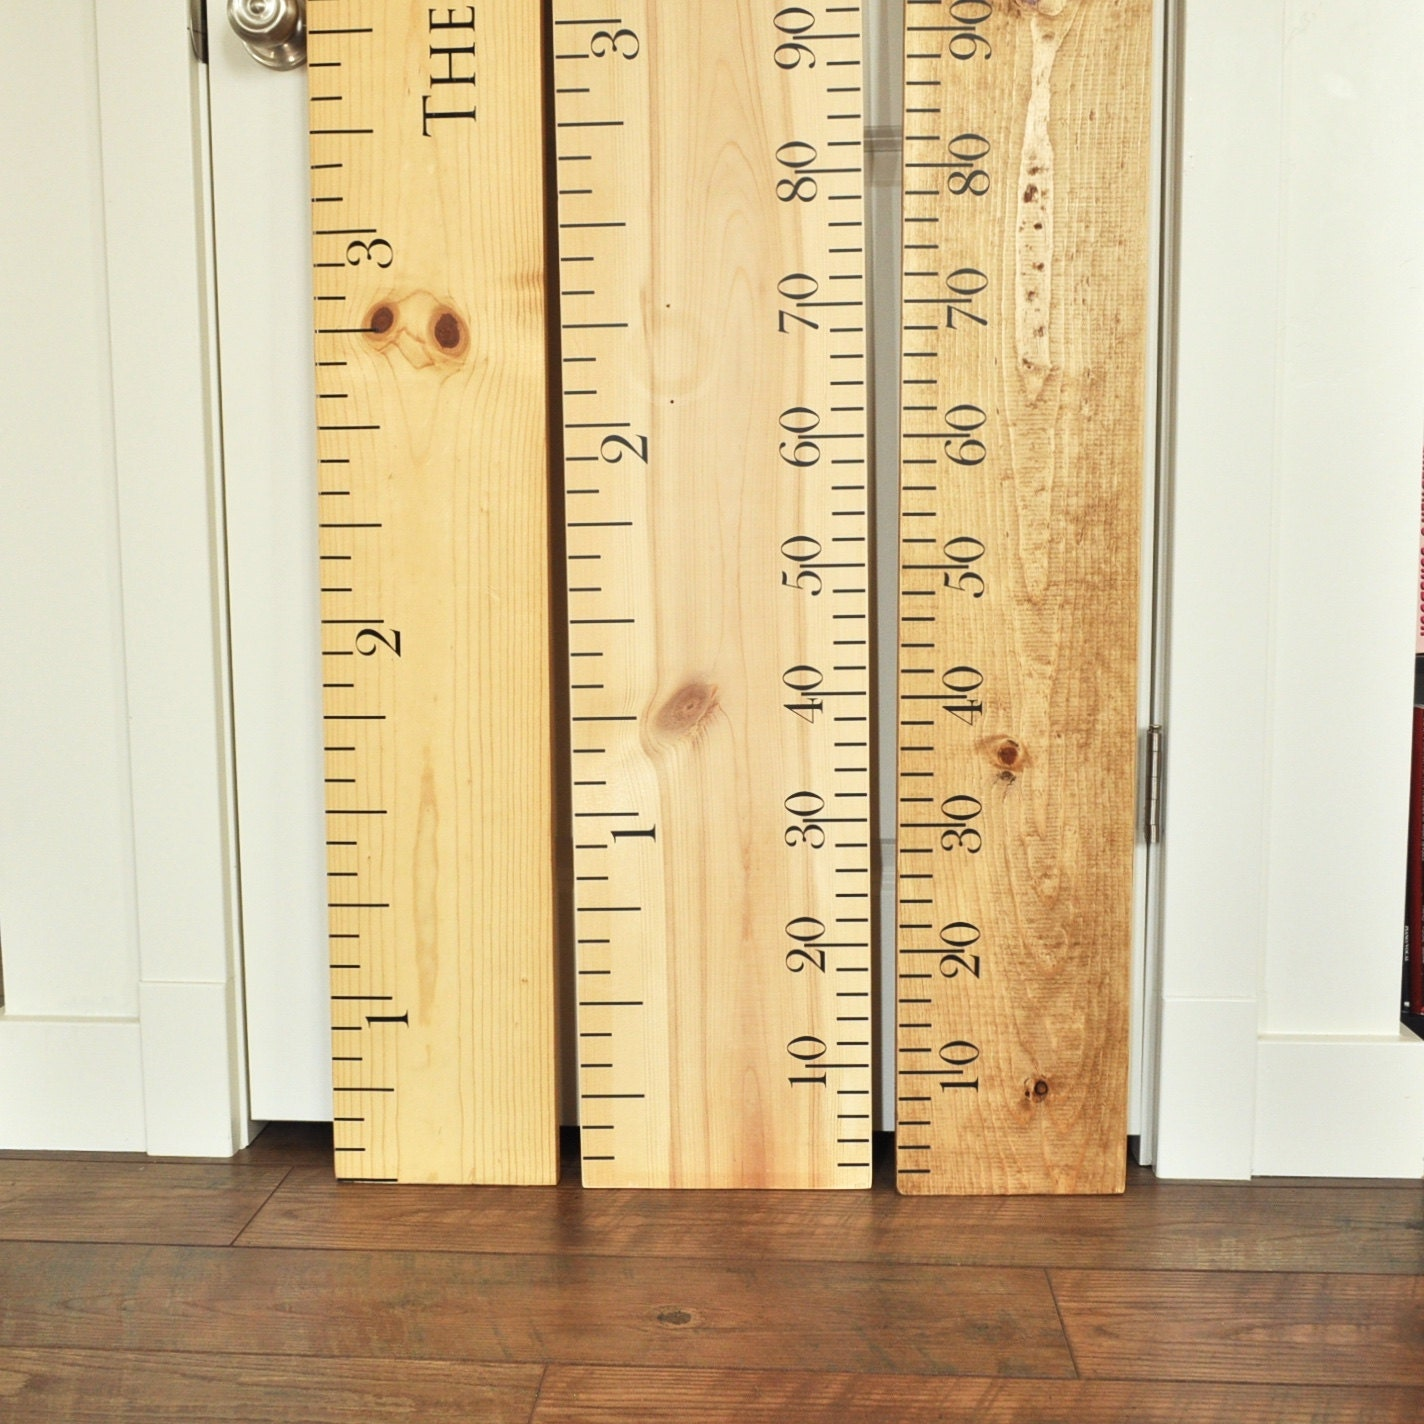 Ruler growth chart kit diy project oversized wood ruler